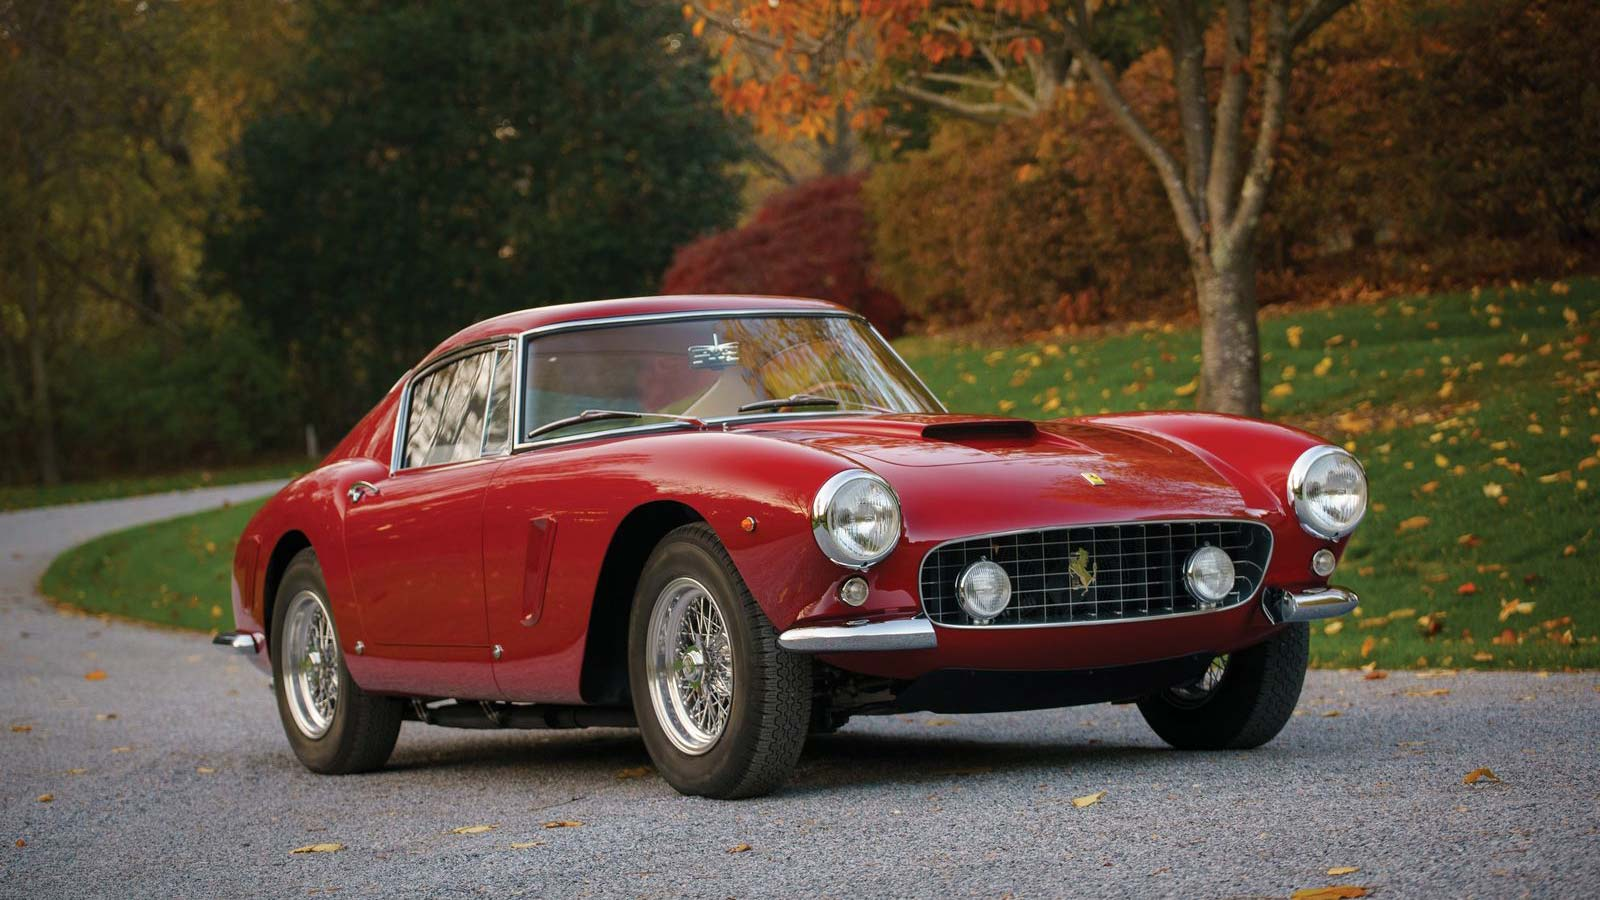 ferrari 250 gt swb berlinetta verso i 10 milioni. Black Bedroom Furniture Sets. Home Design Ideas